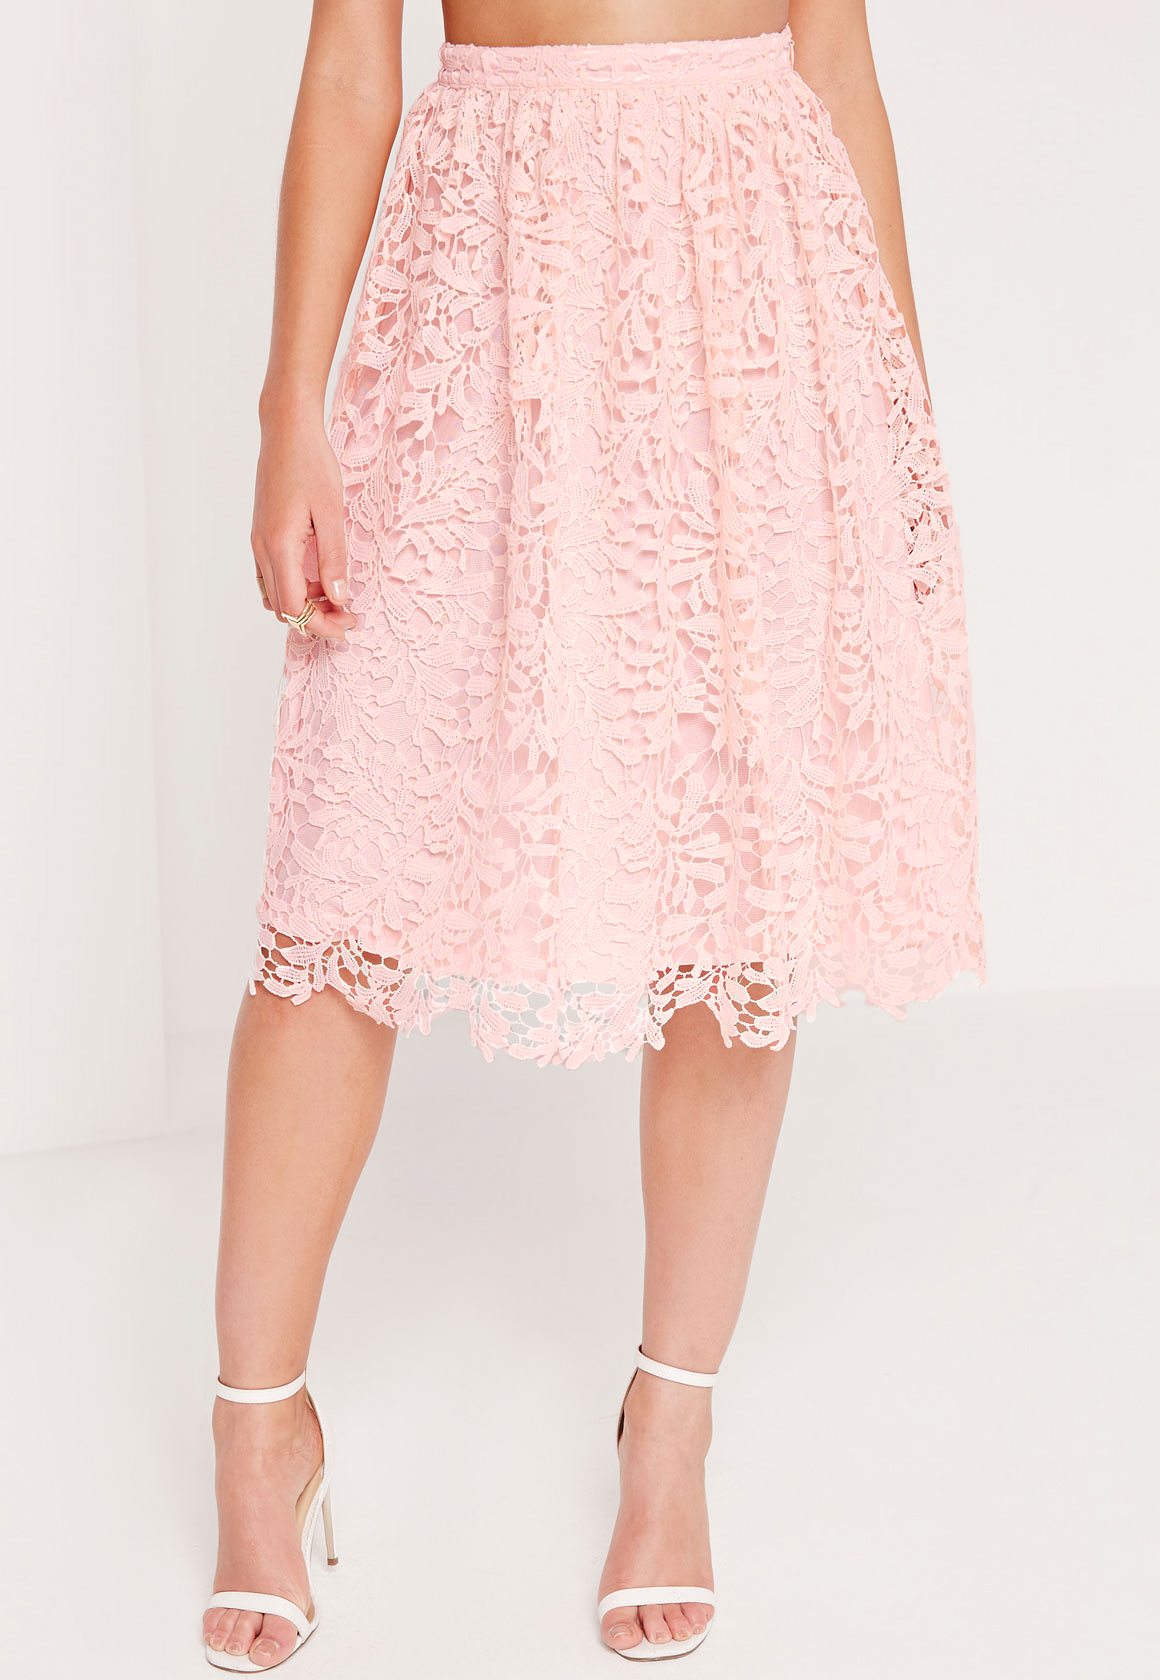 Missguided Crochet Lace Full Midi Skirt Pink in Pink | Lyst